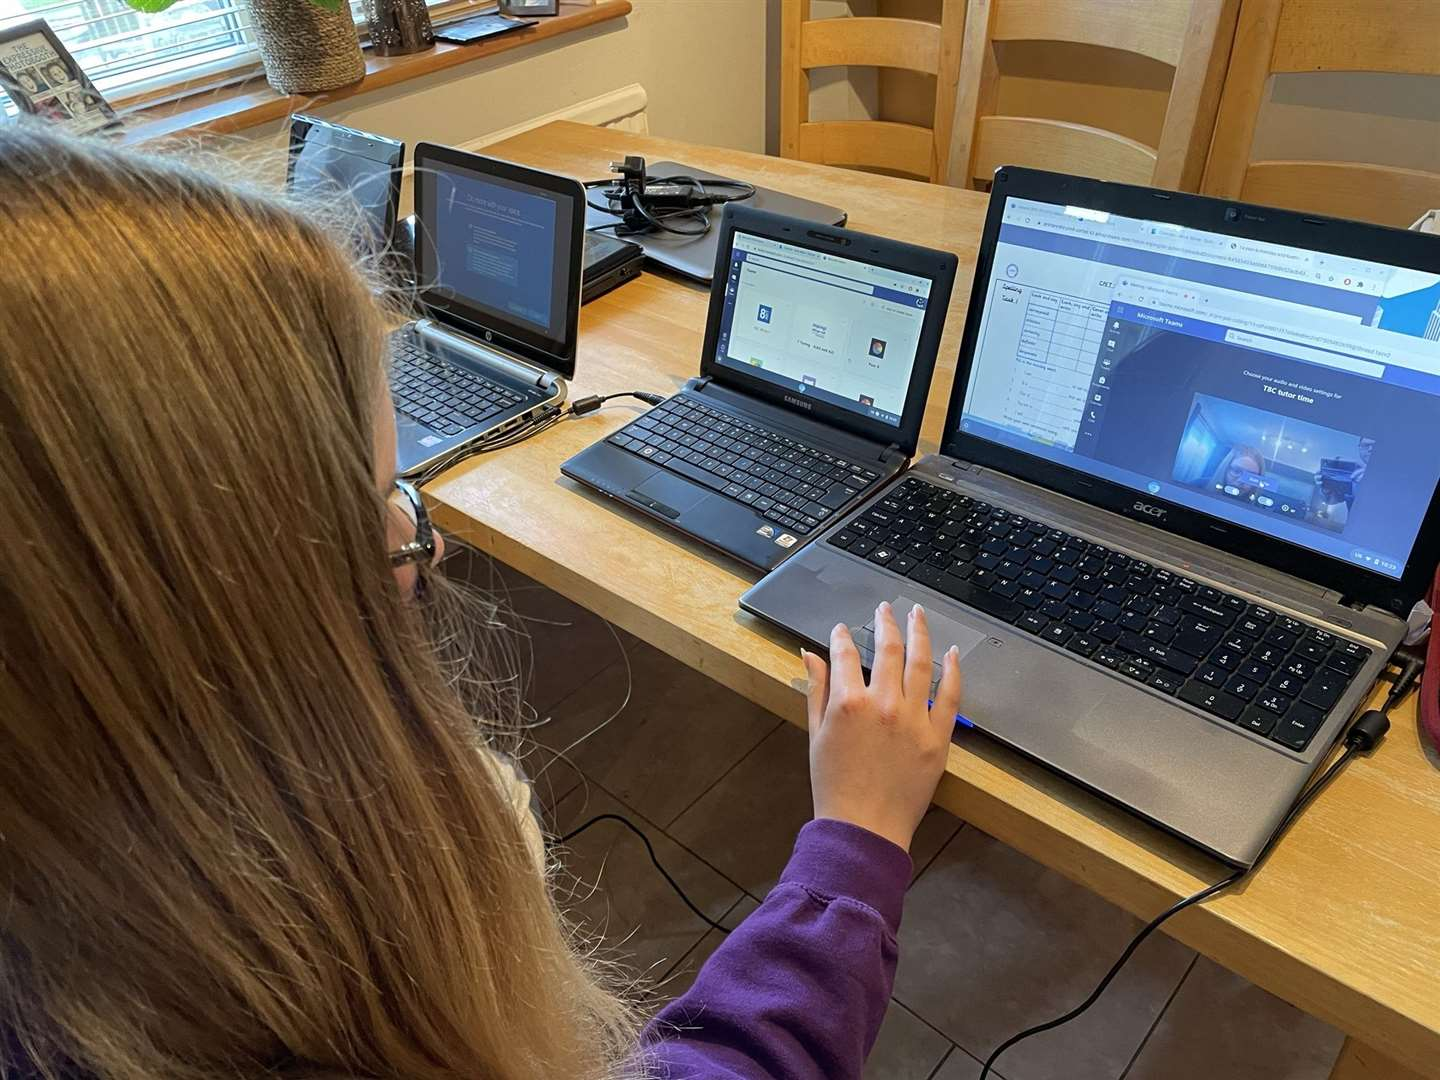 A campaign has been launched to ensure that children get the right digital equipment for homeschooling. (44082170)